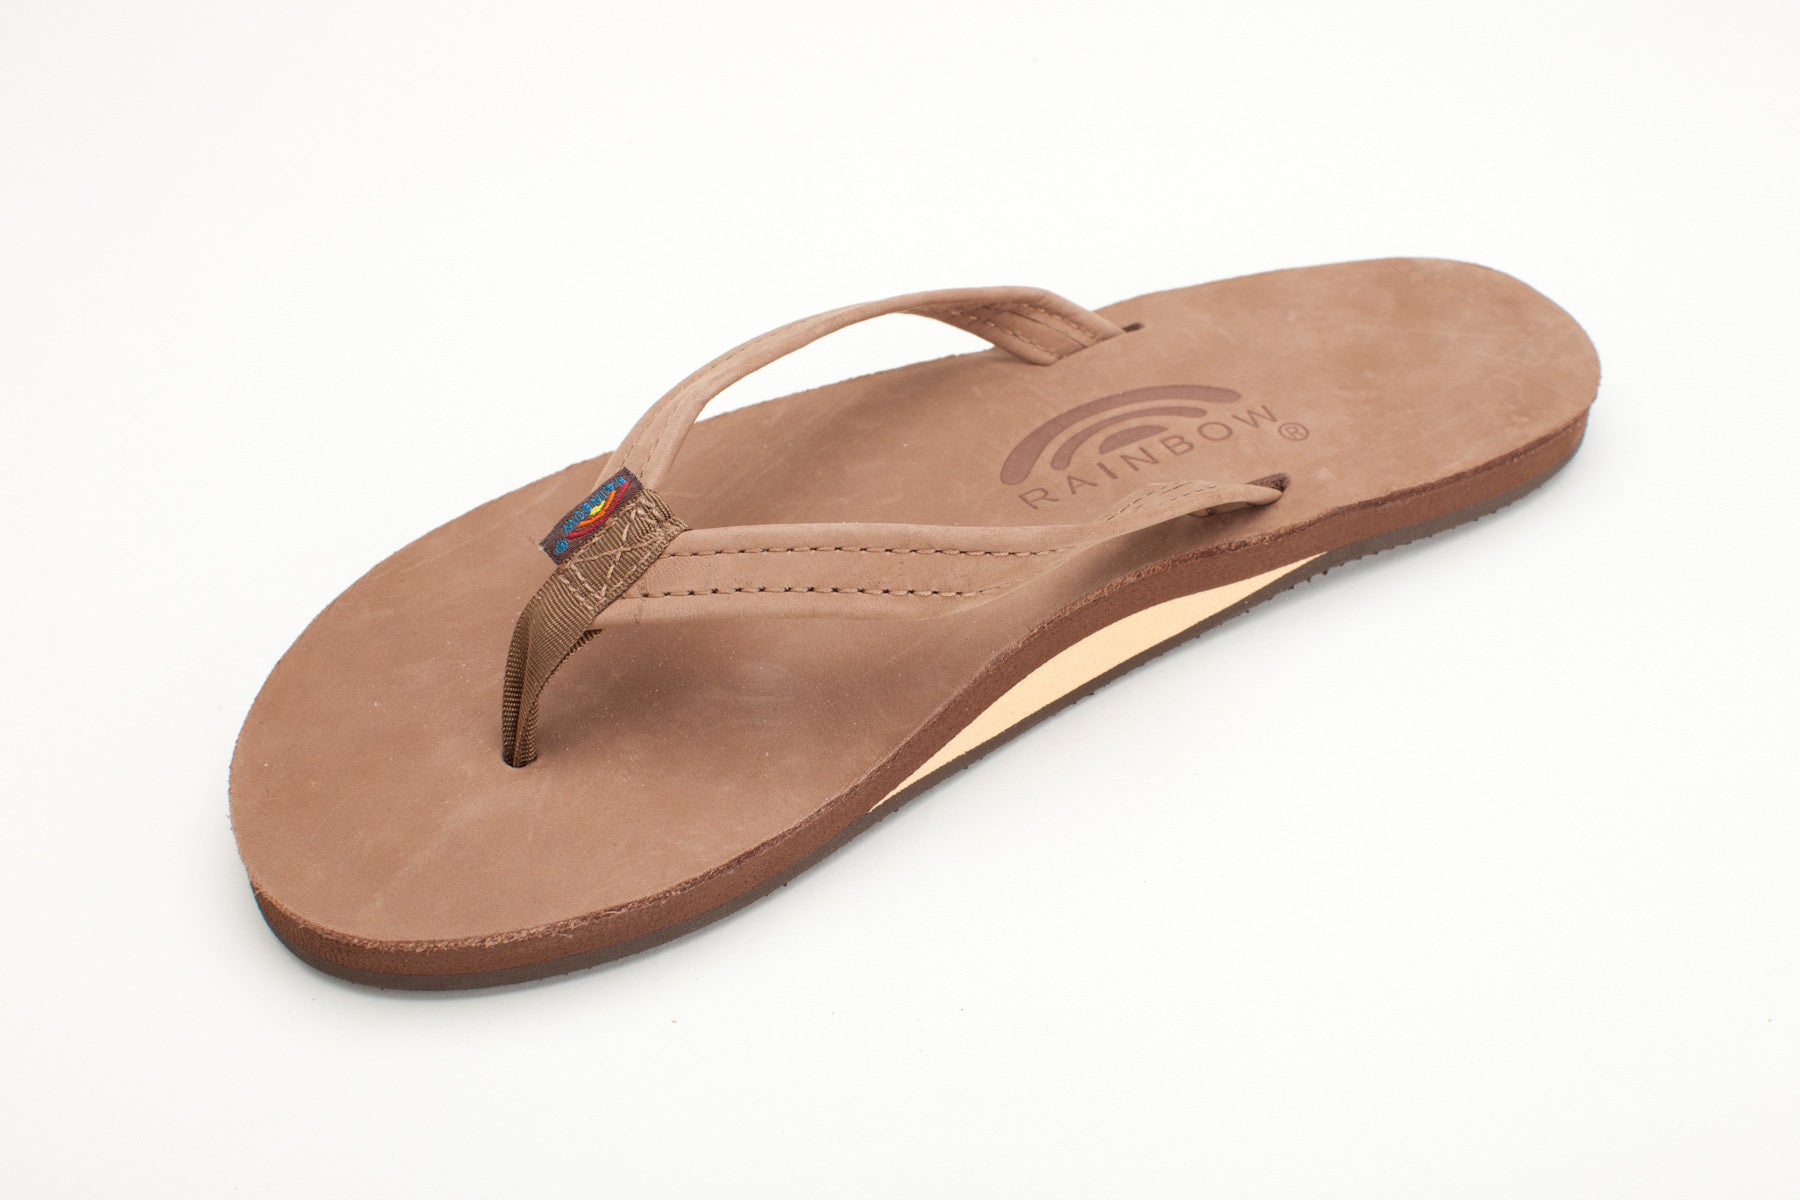 9e7251803 Rainbow Sandals Women s Dark Brown Premier Leather Single Layer with Arch  Support and a Narrow Strap